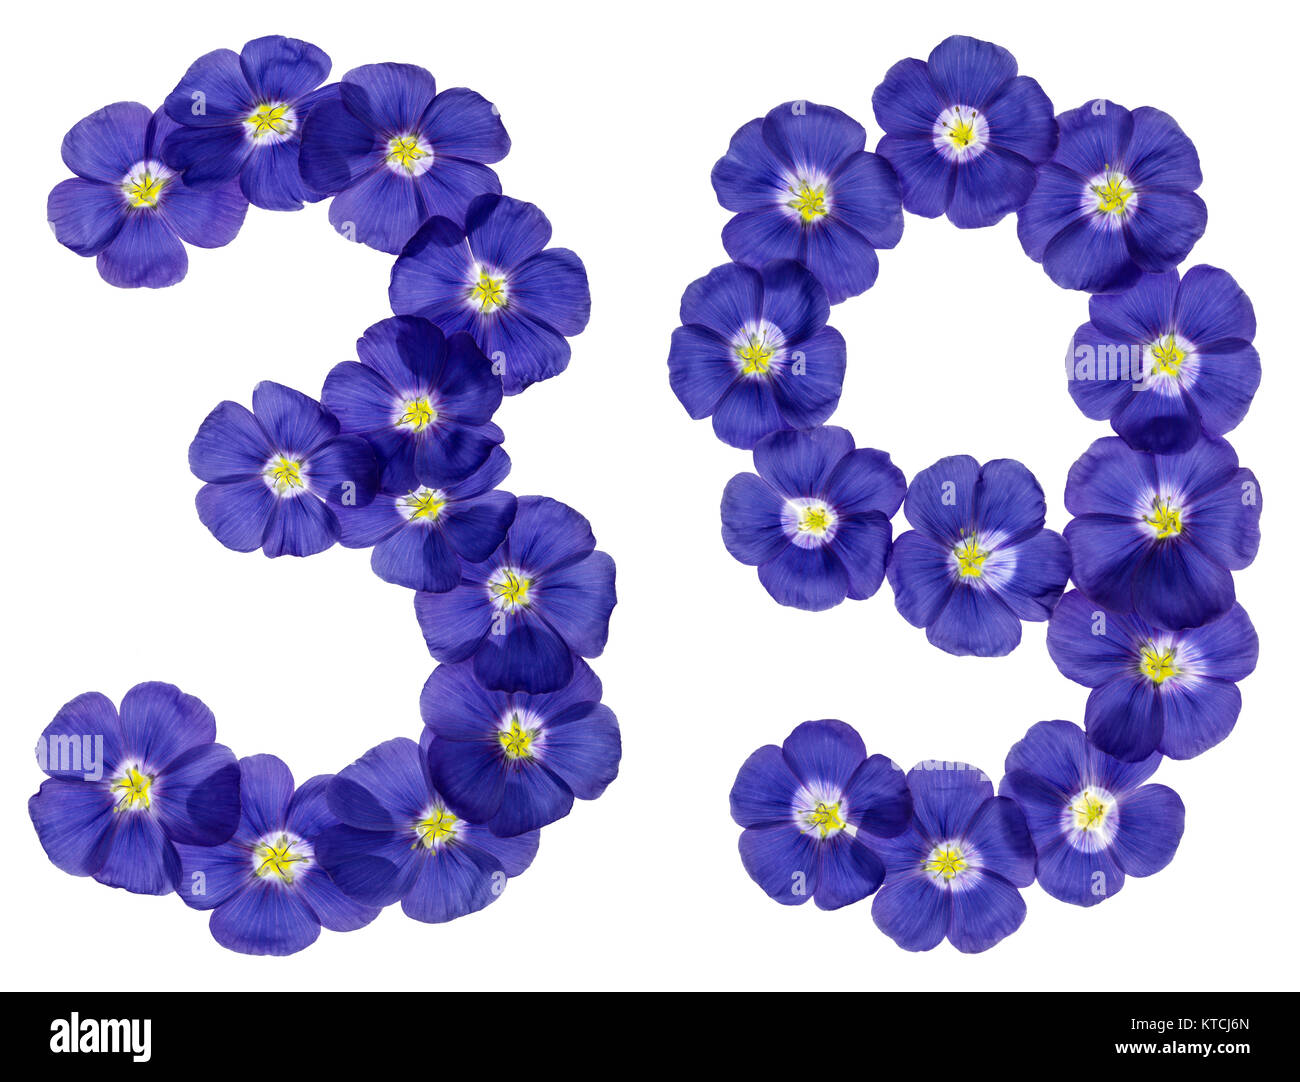 Arabic numeral 39, thirty nine, from blue flowers of flax, isolated on white background Stock Photo